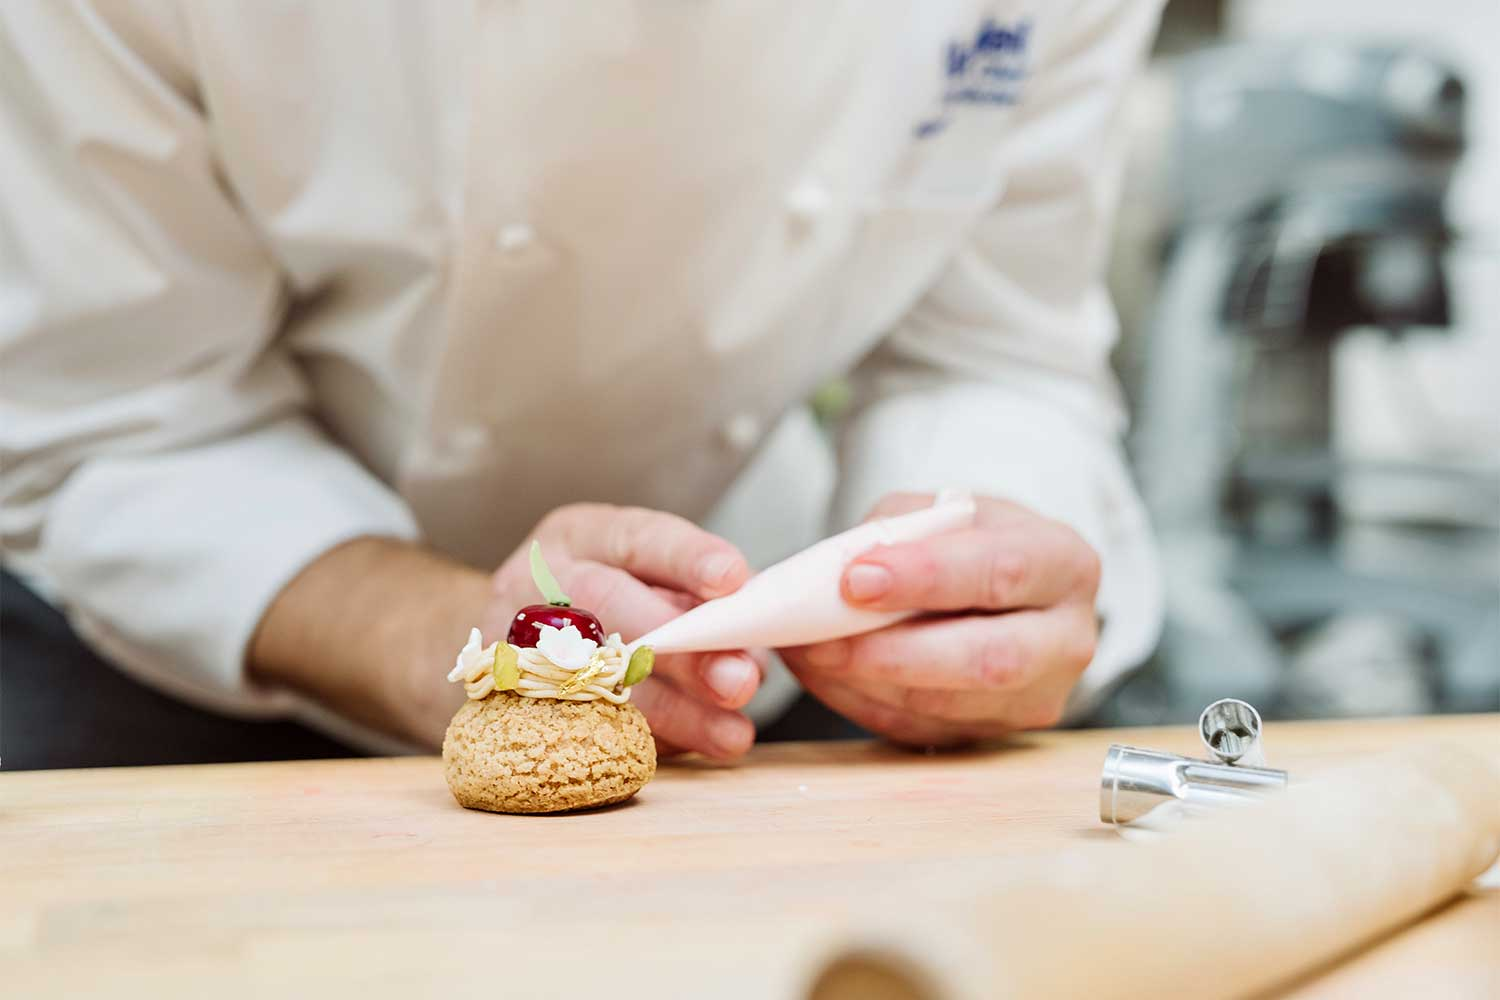 Close up shot of a pastry chef finishing icing on a small biscuit